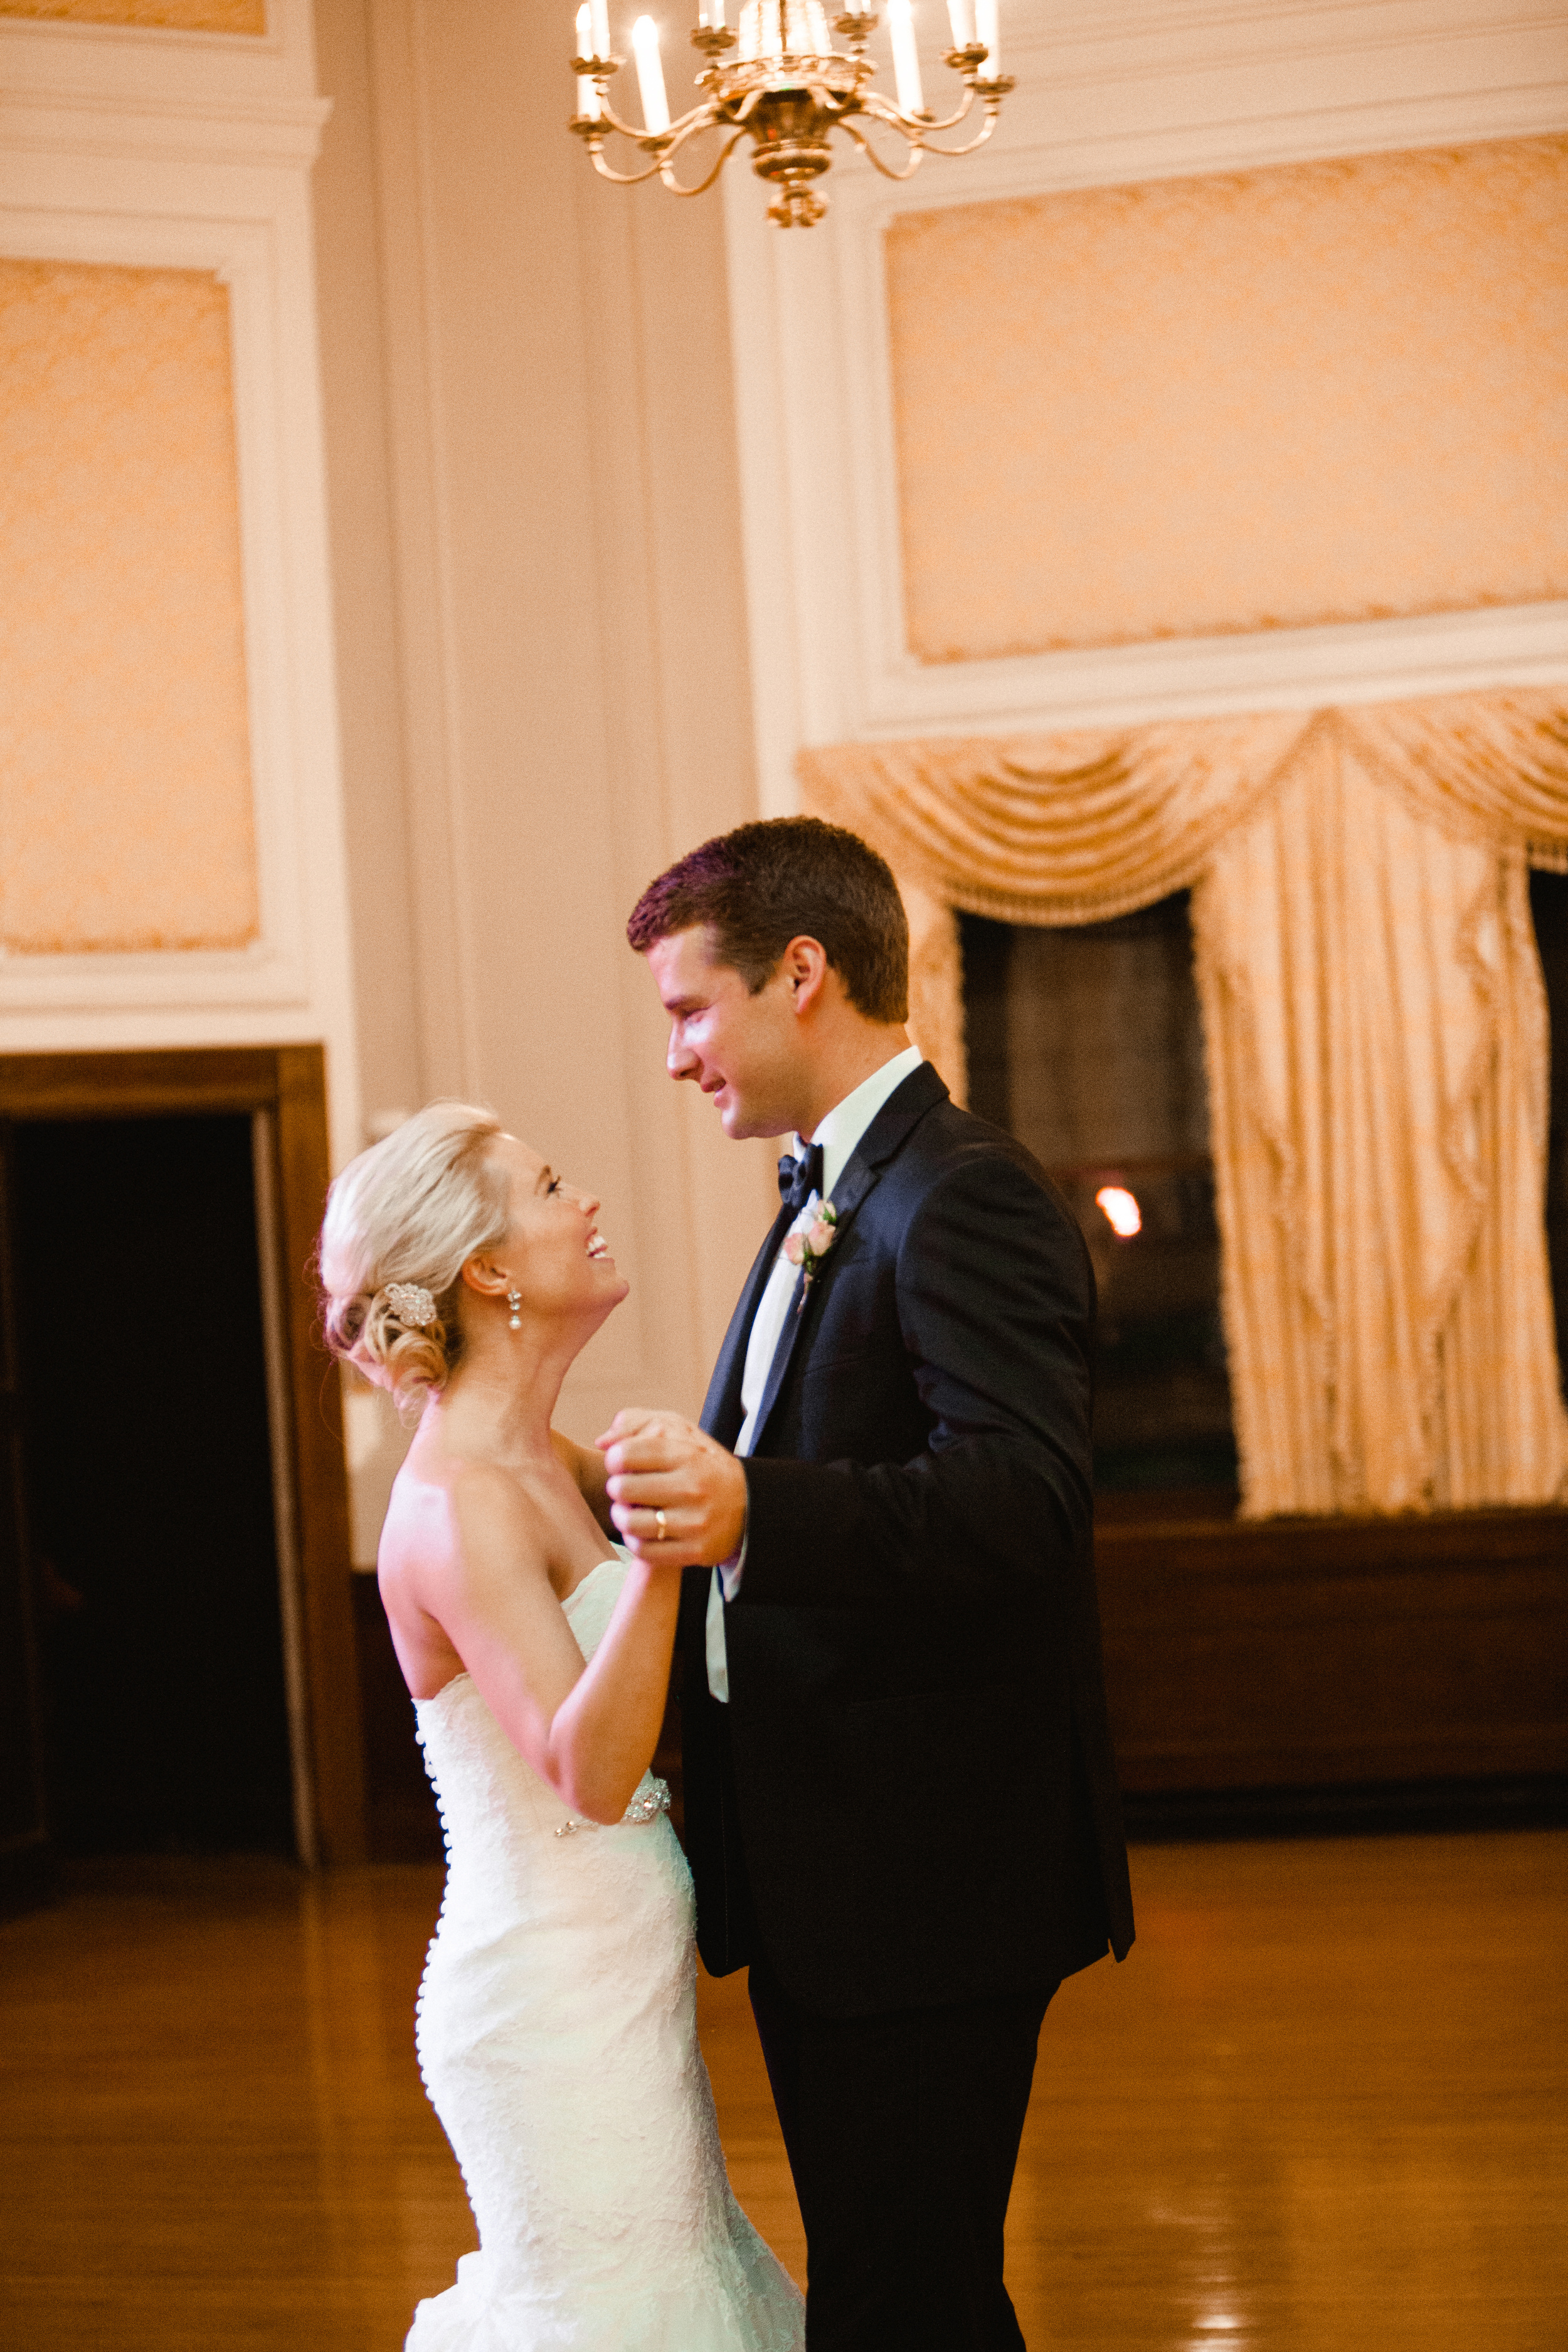 ChelseaMike_Wedding_AmyCampbellPhotography_0767.jpg